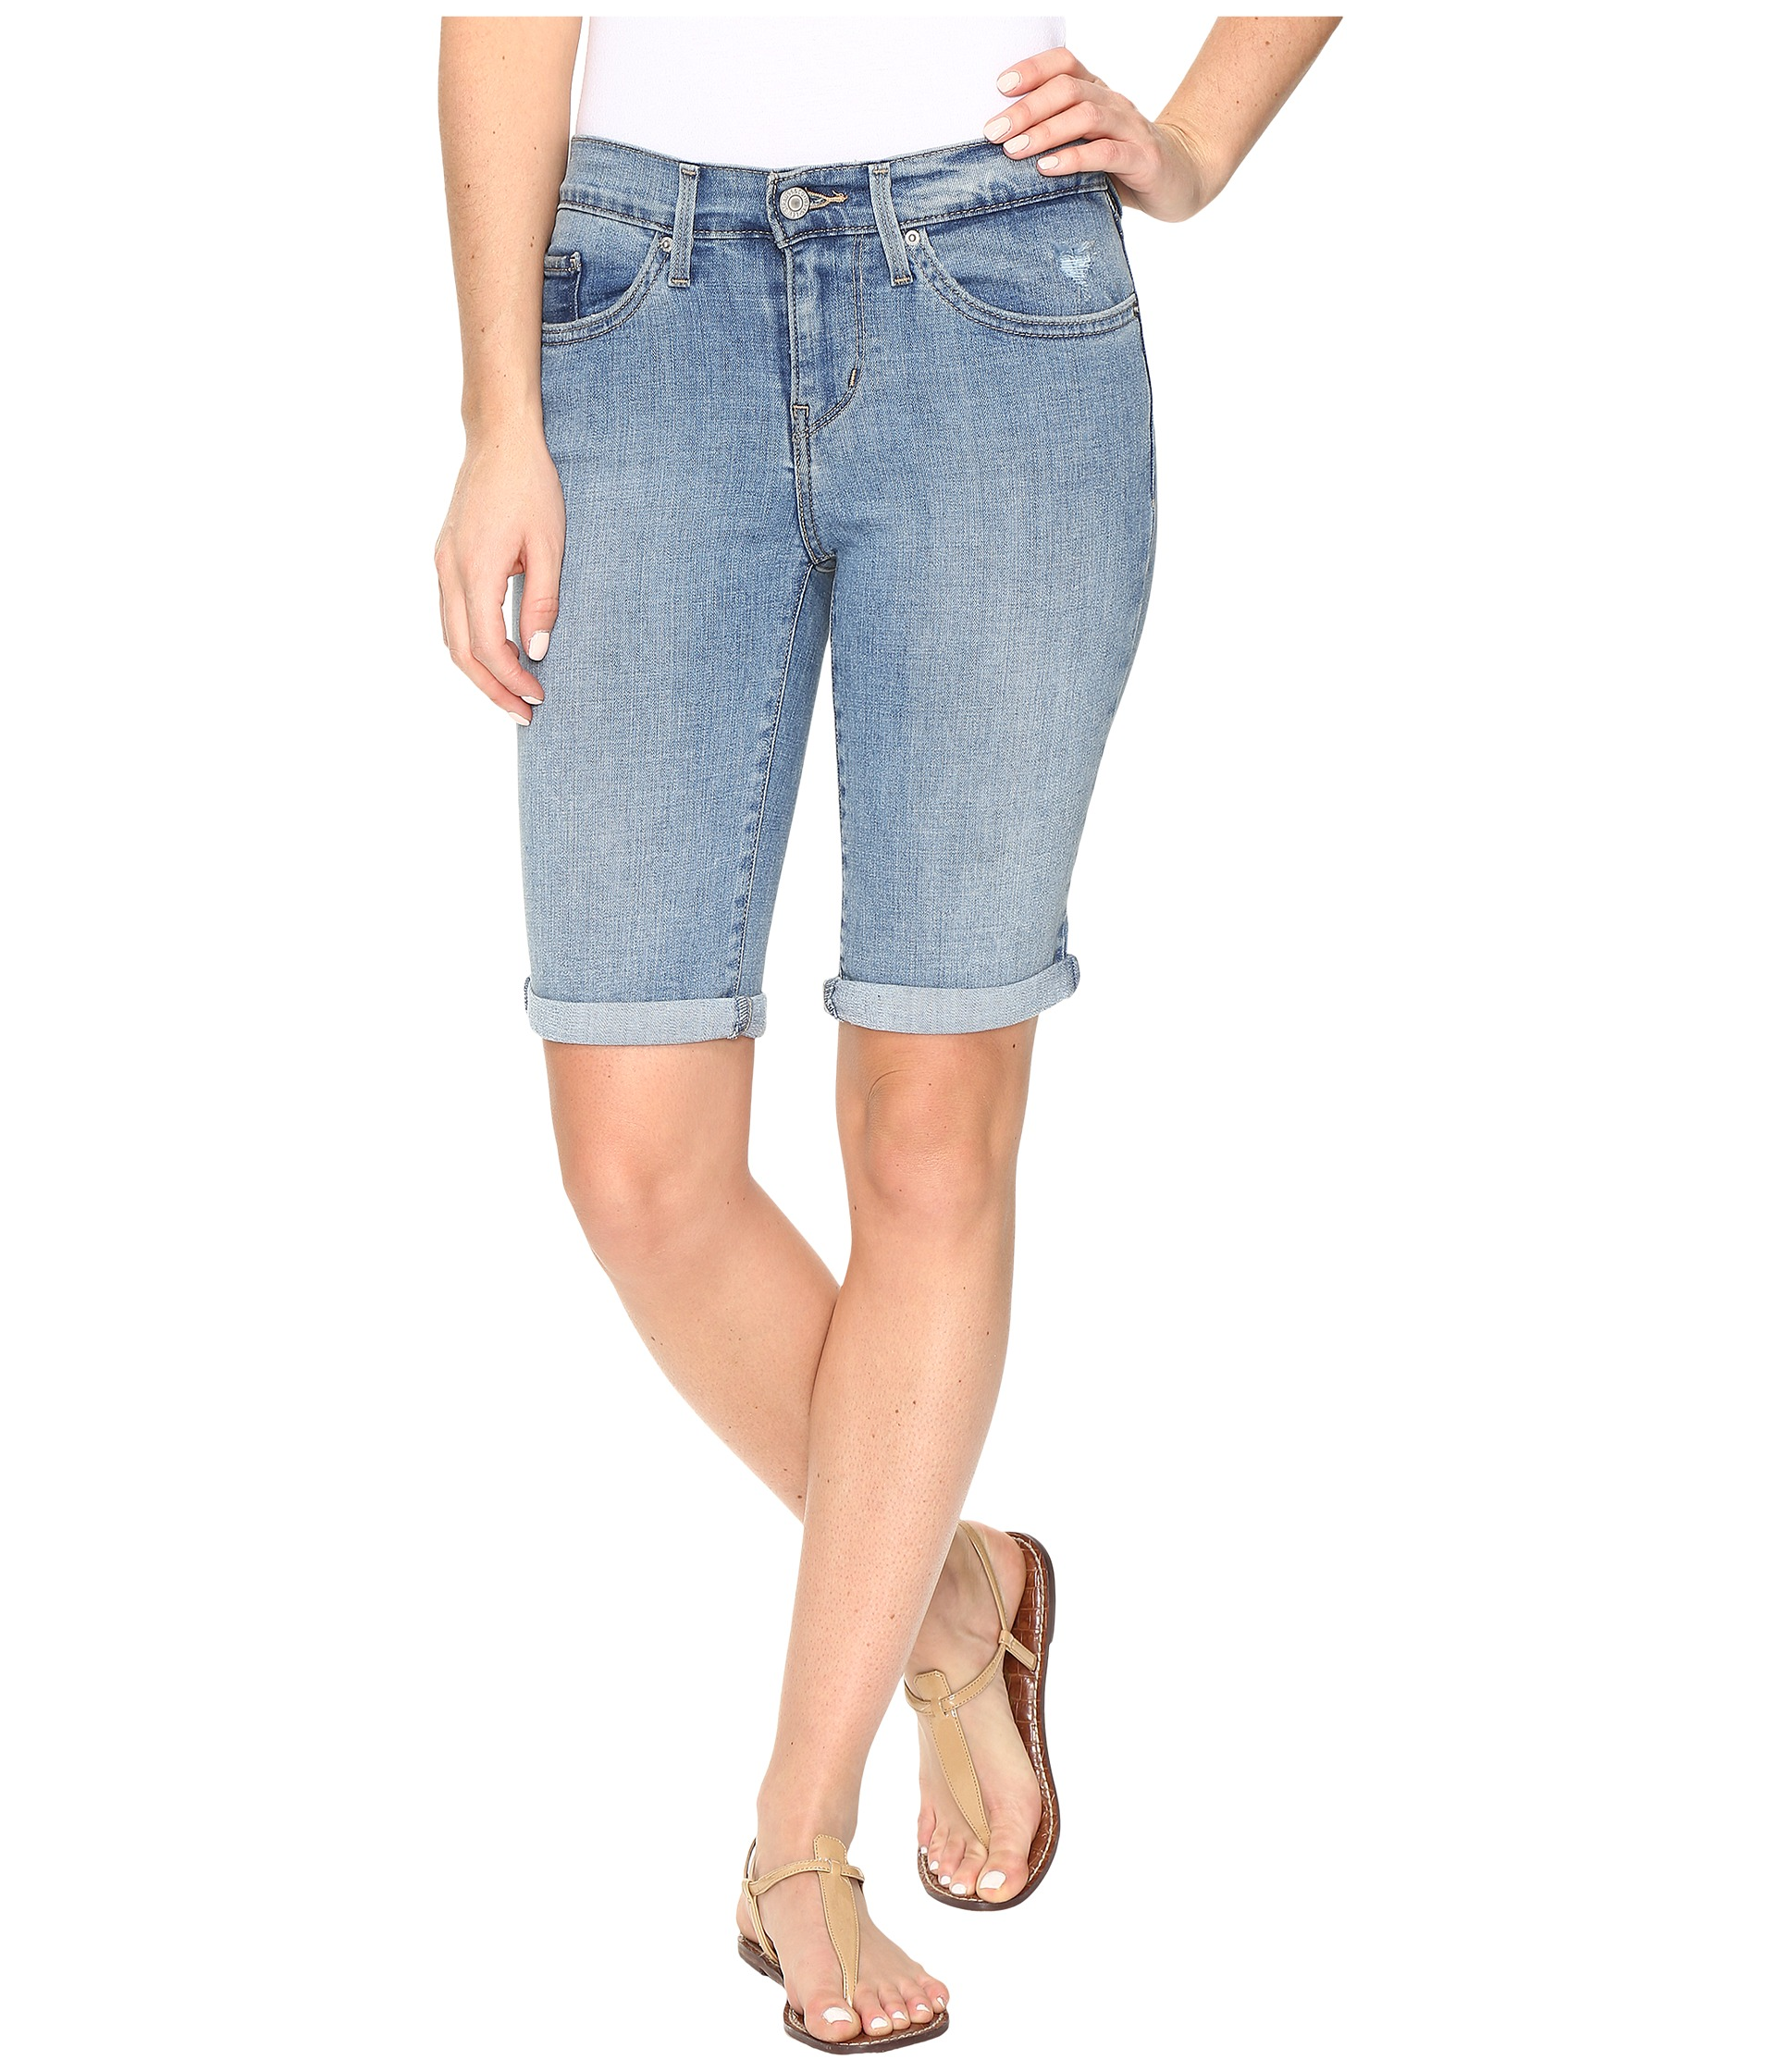 Choose from a great selection of capris, bermuda shorts, dresses, tops, and more! FREE 2 DAY SHIPPING AND FREE GIFT! With regular price CLOTHING orders of $ or more.